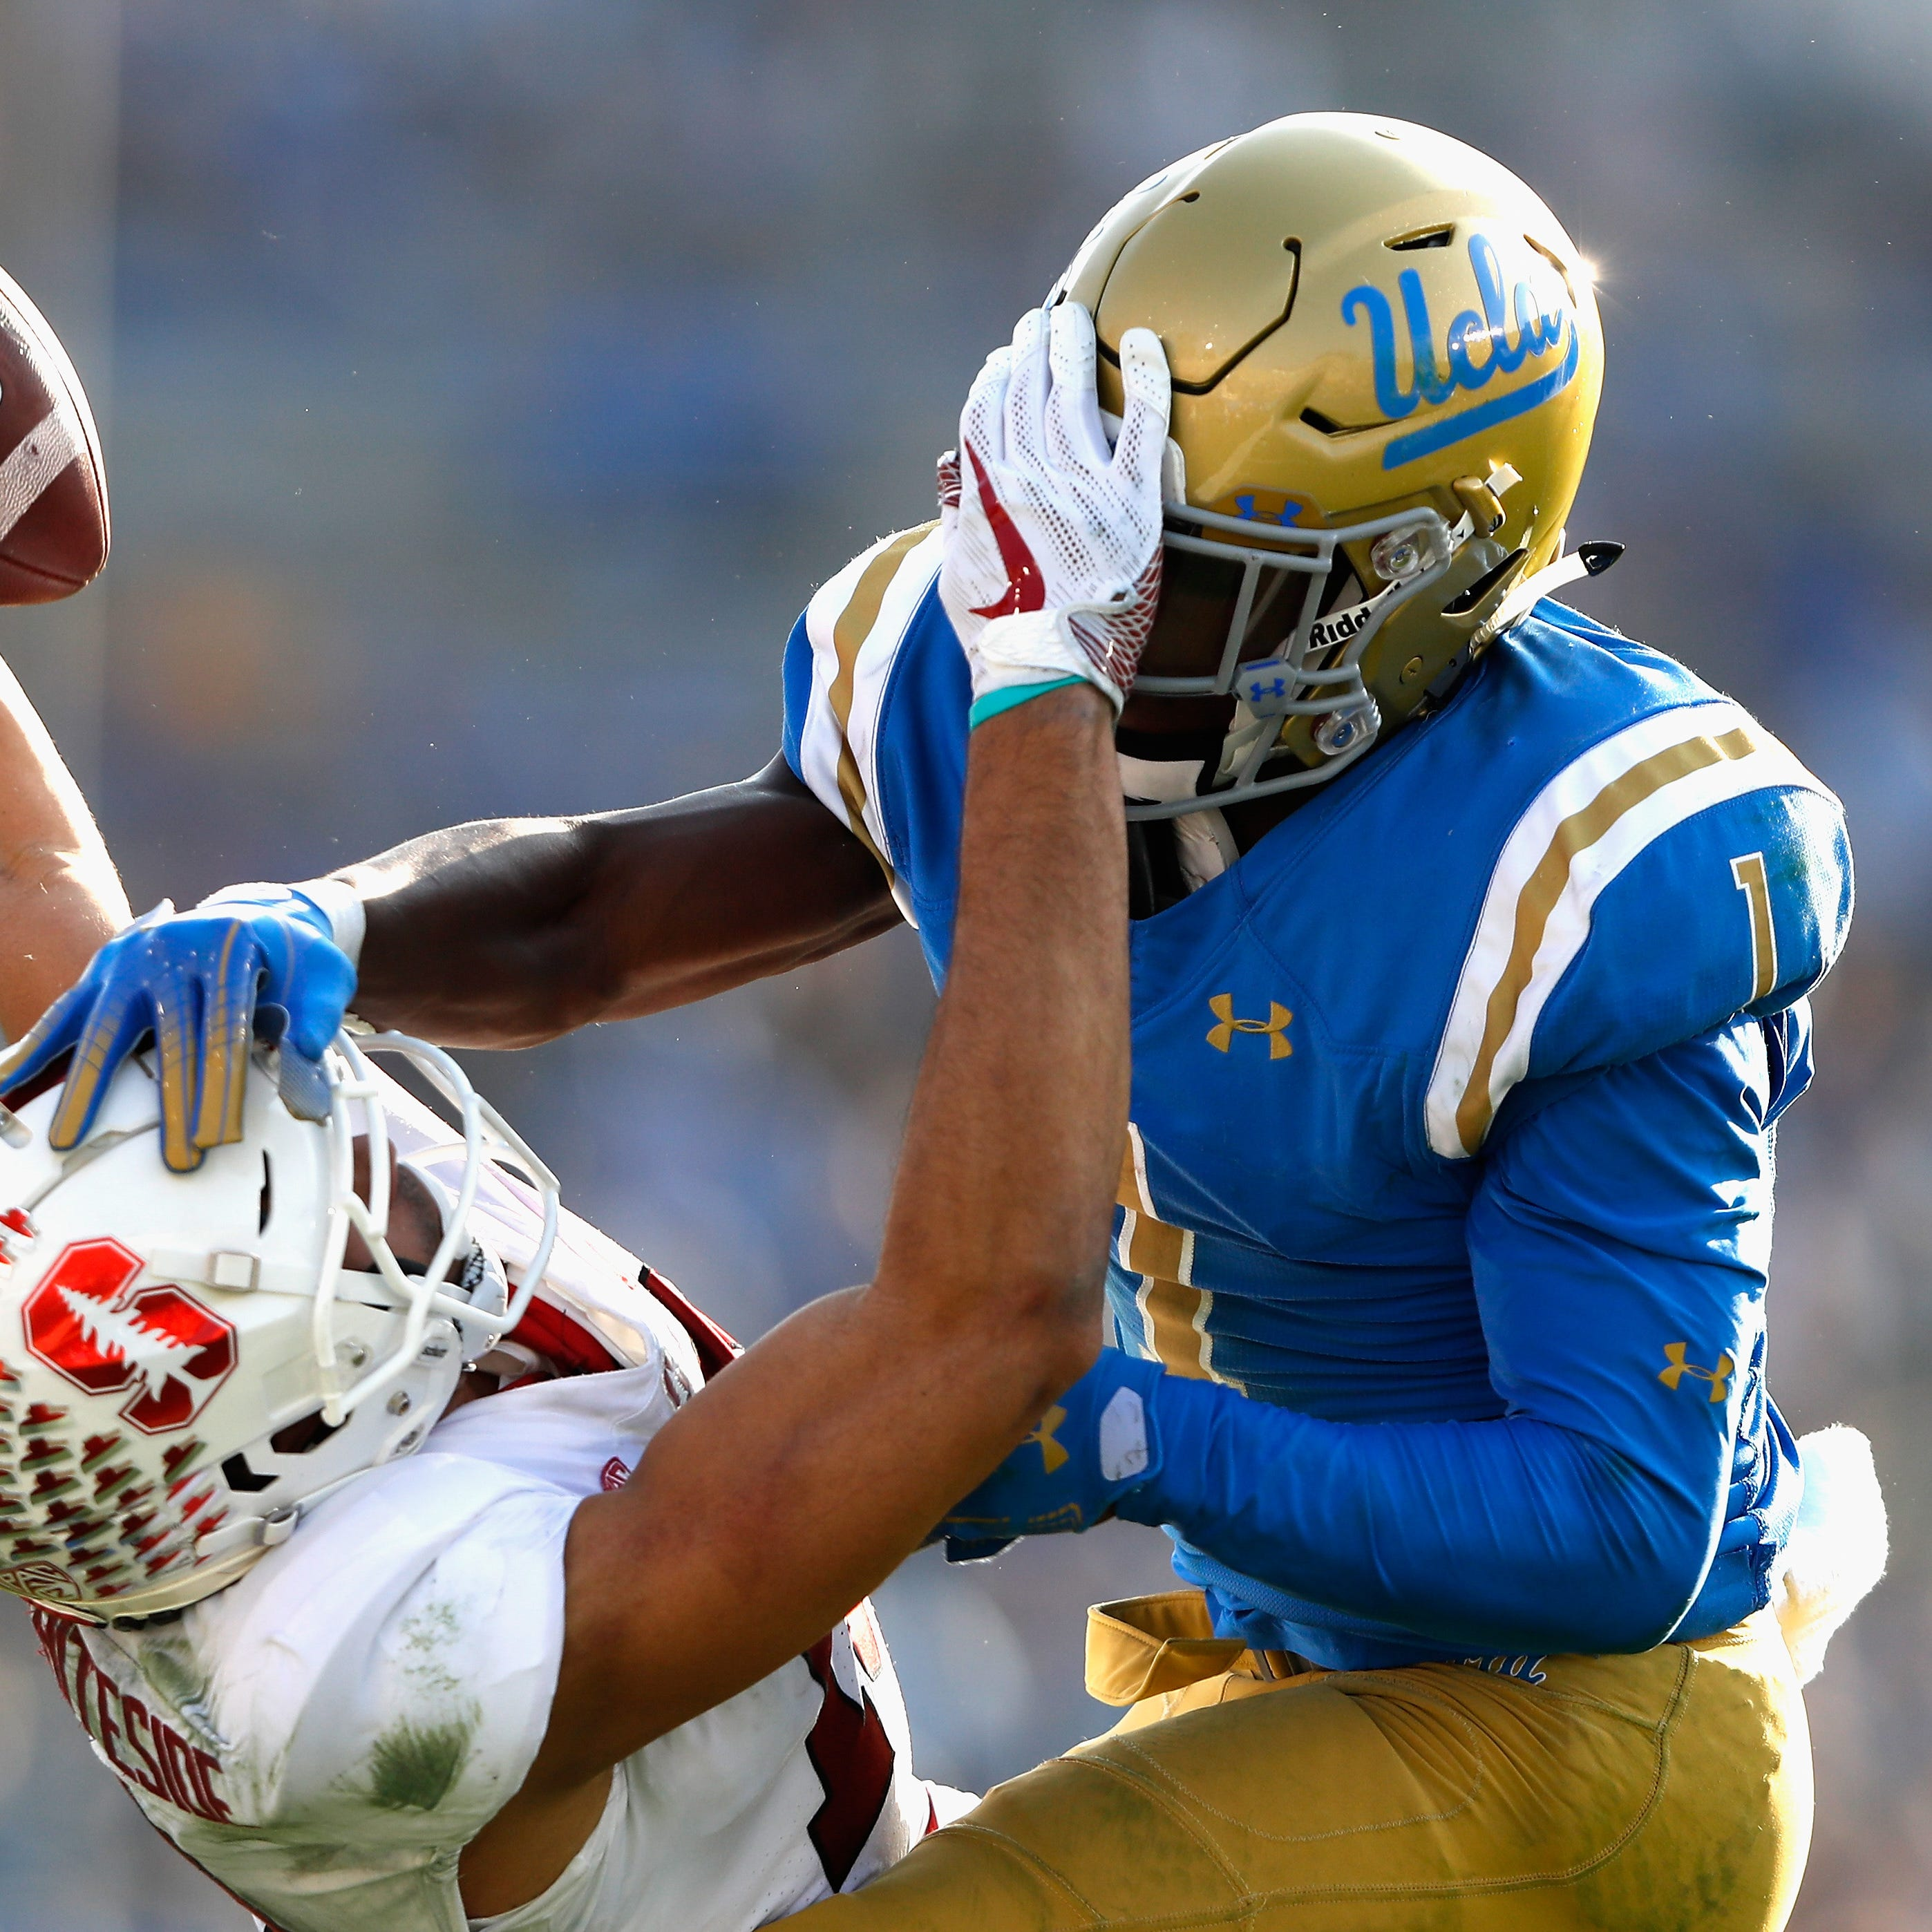 Losing game: Pac-12 Networks' payouts to schools far below targets